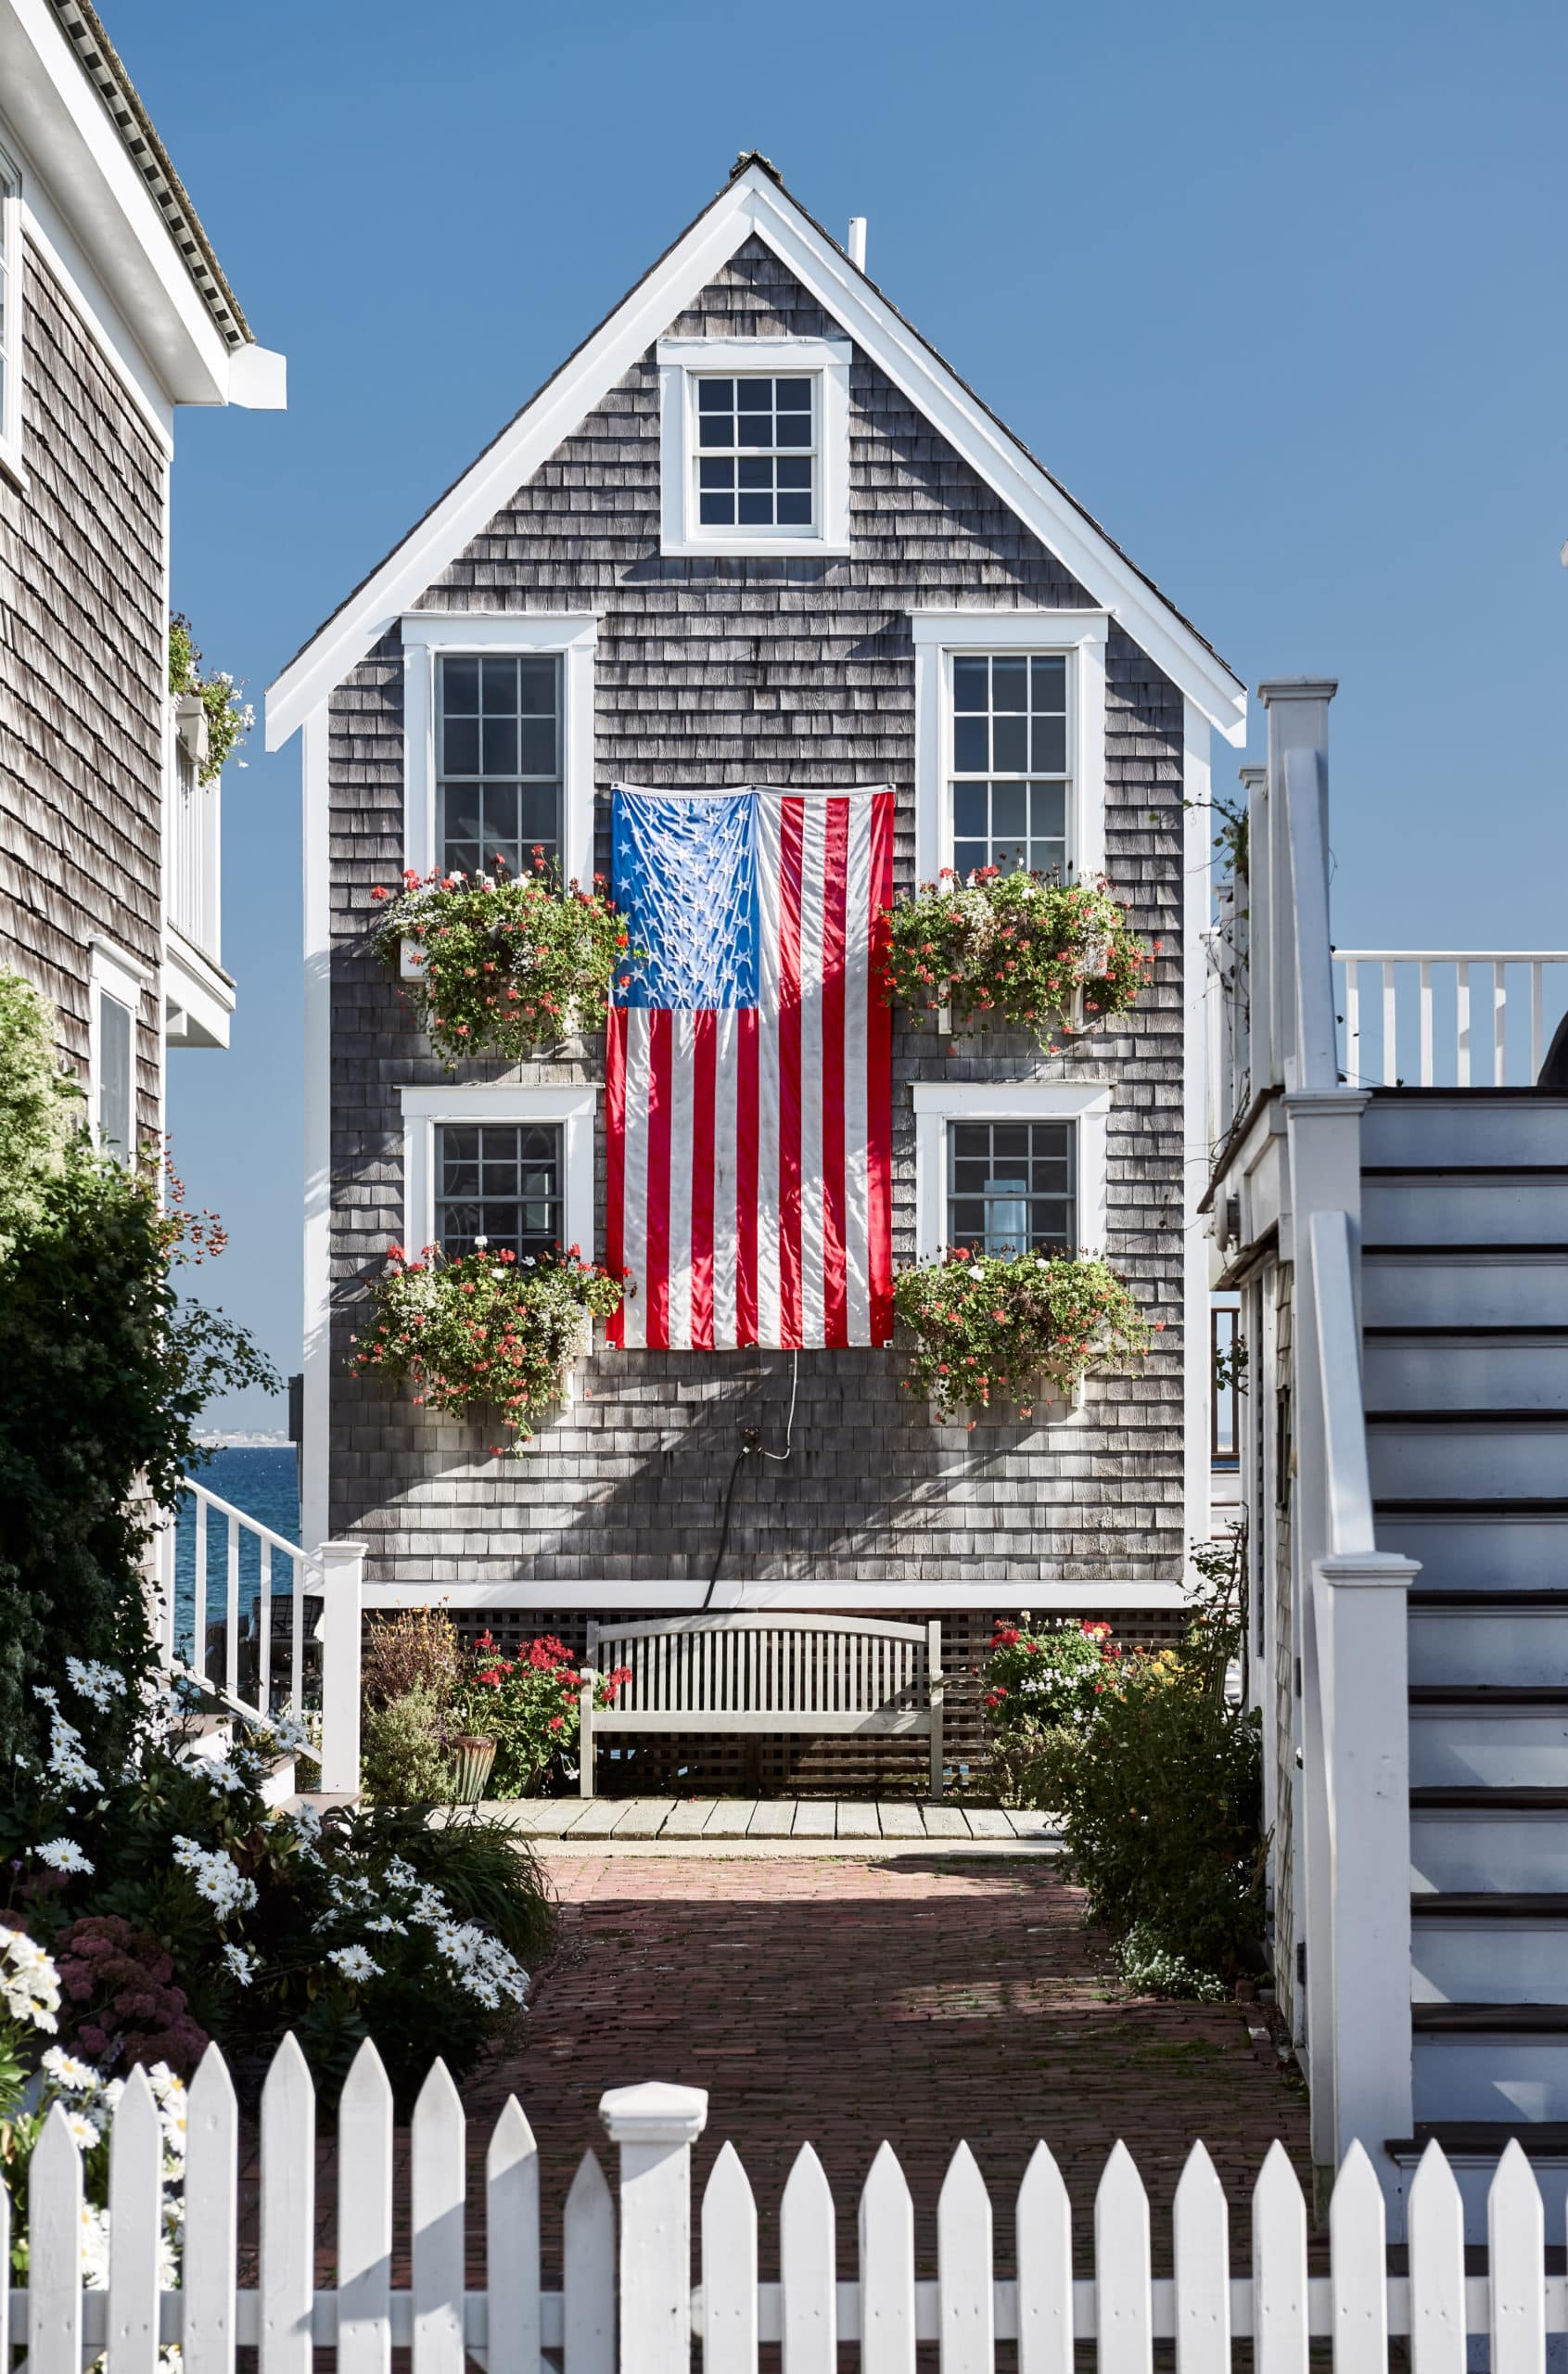 United States flag at suburban neighborhood. Provincetown, Cape Cod, Massachusetts, USA.